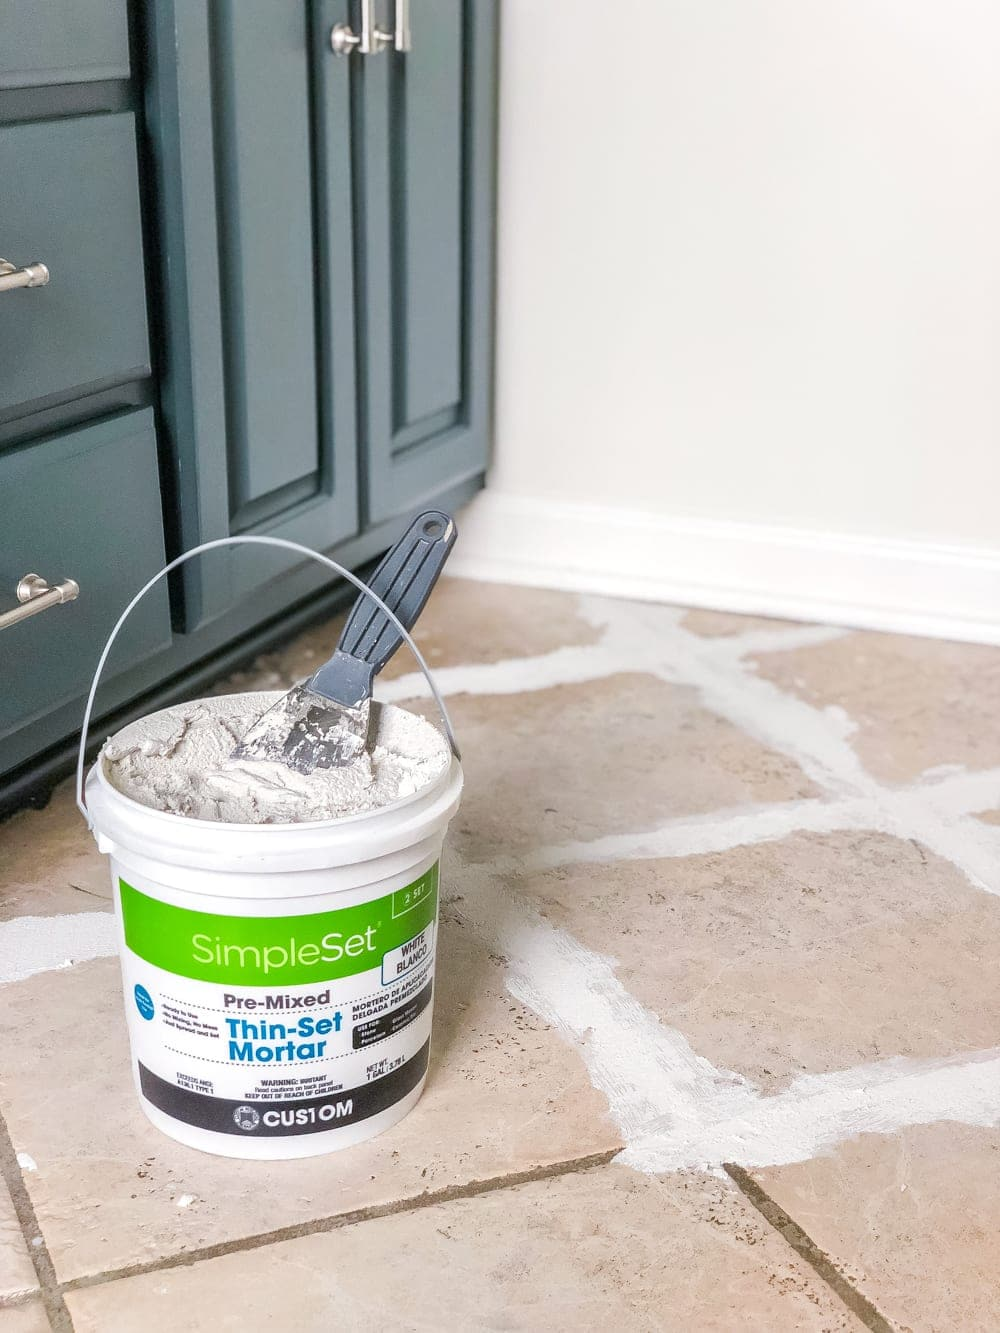 How to install sheet vinyl flooring over old tile | fill grout lines with thin-set mortar